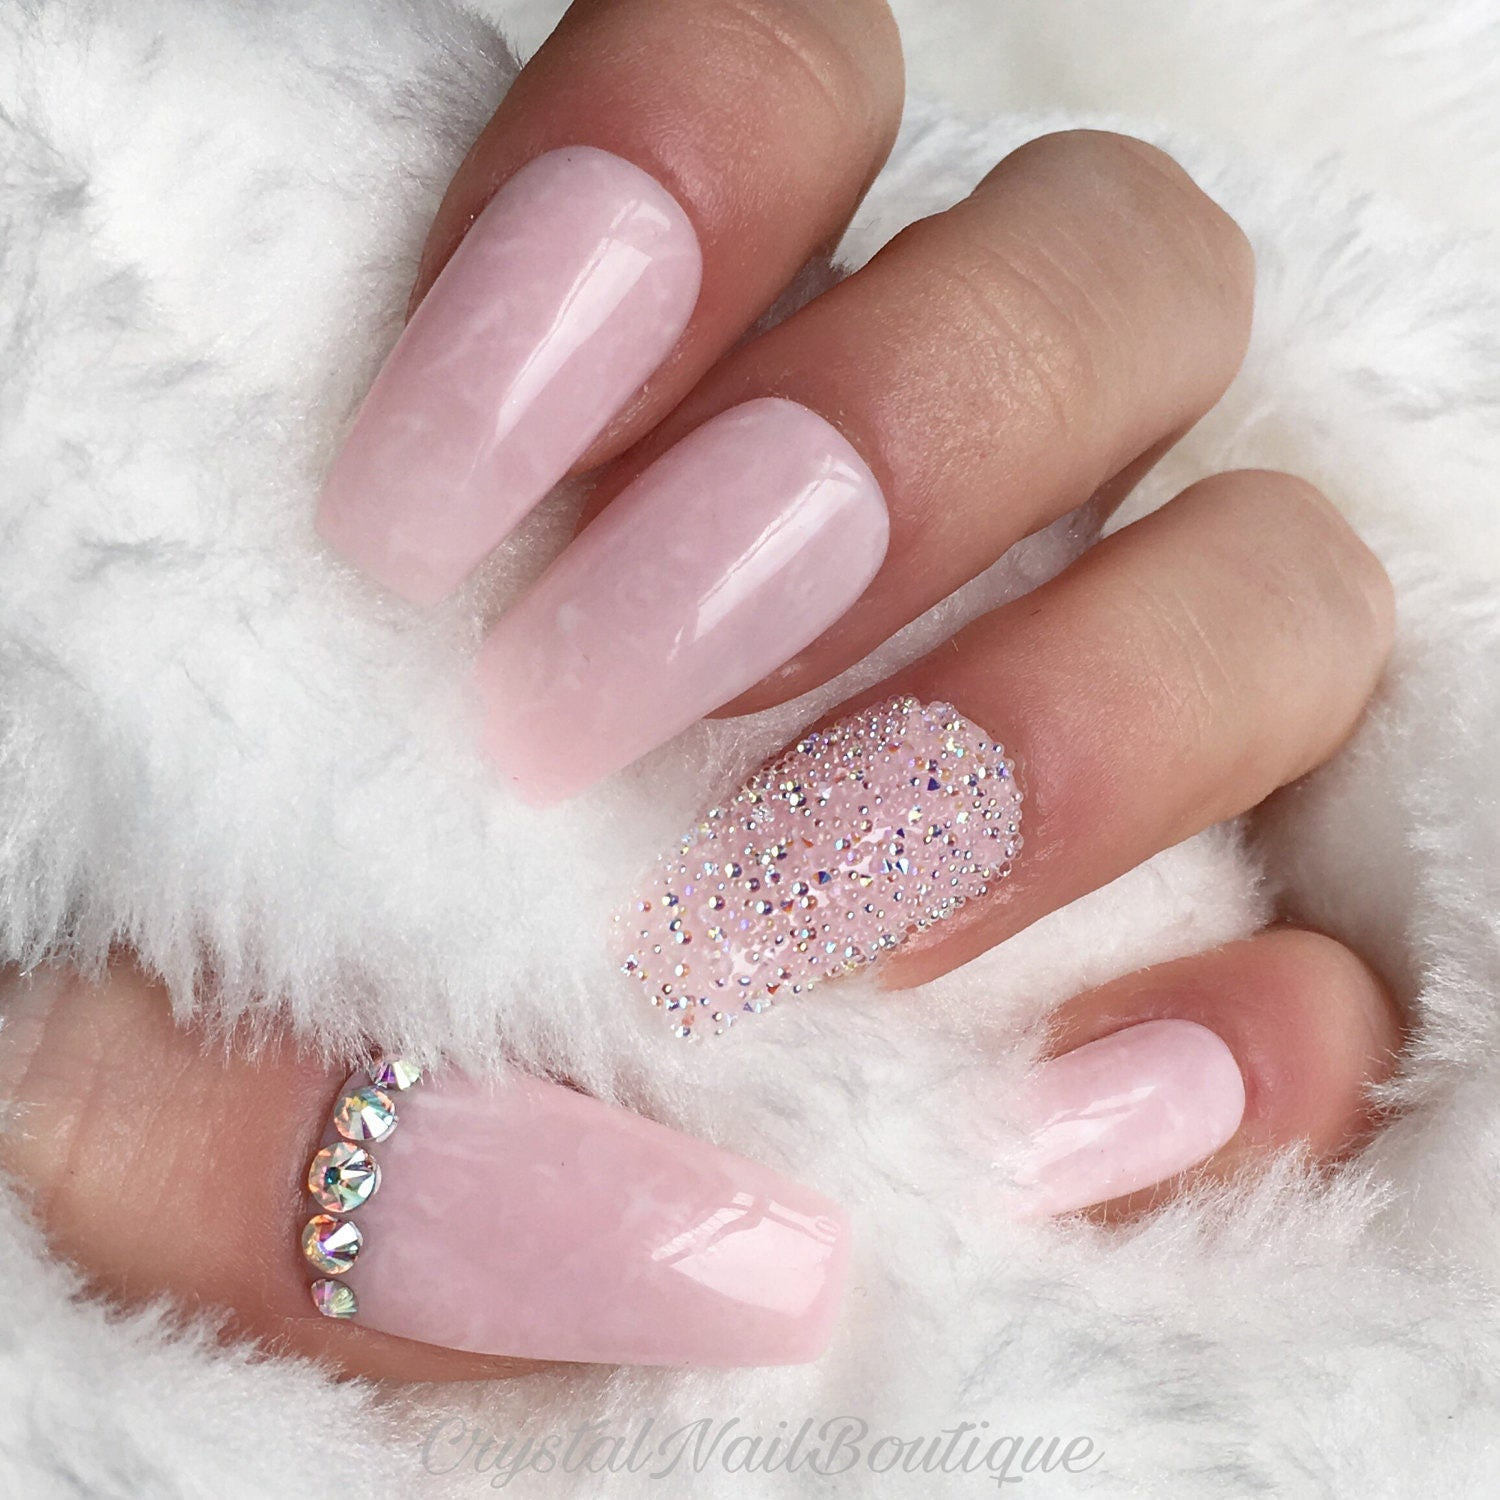 with gel get nails clean halloween on brush my free the nail remover acetone polish angled cure then light skin i if img and pink by accident it an manicure